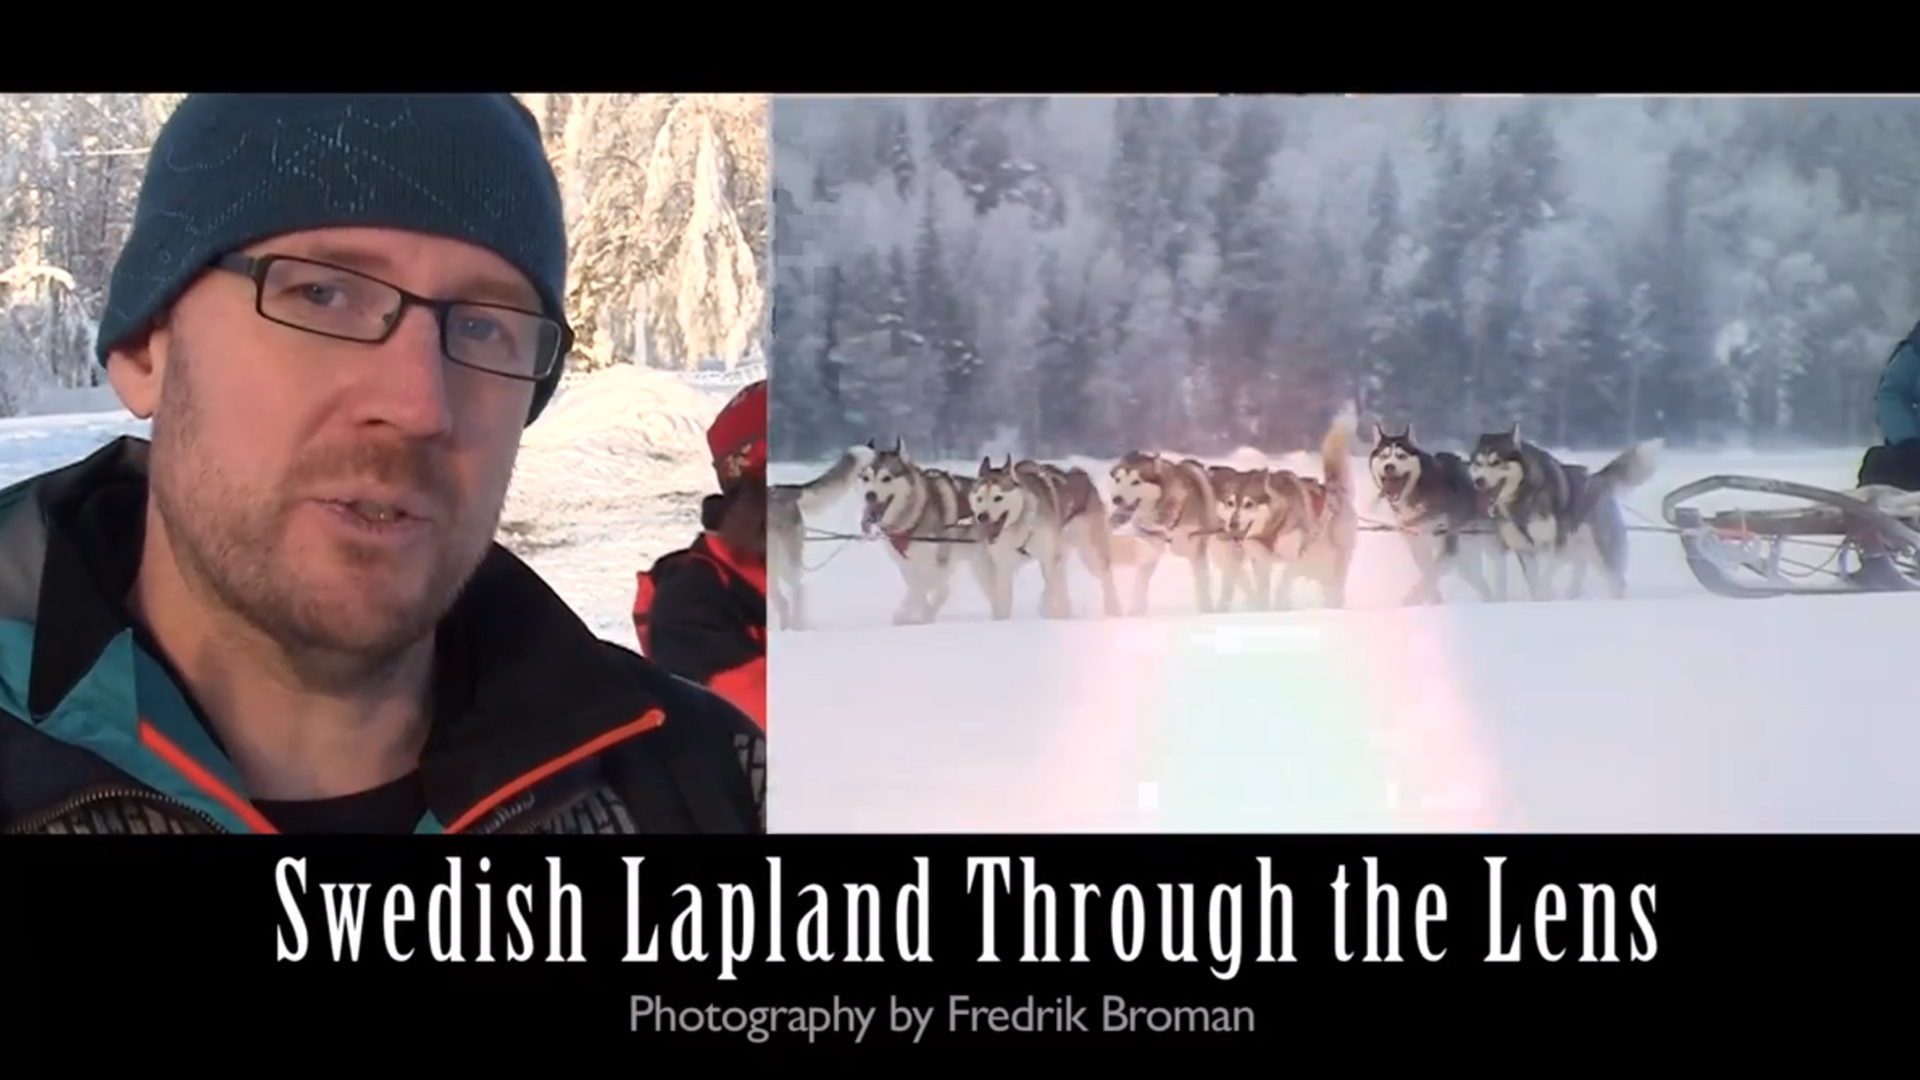 Swedish-Lapland-Through-the-Lens